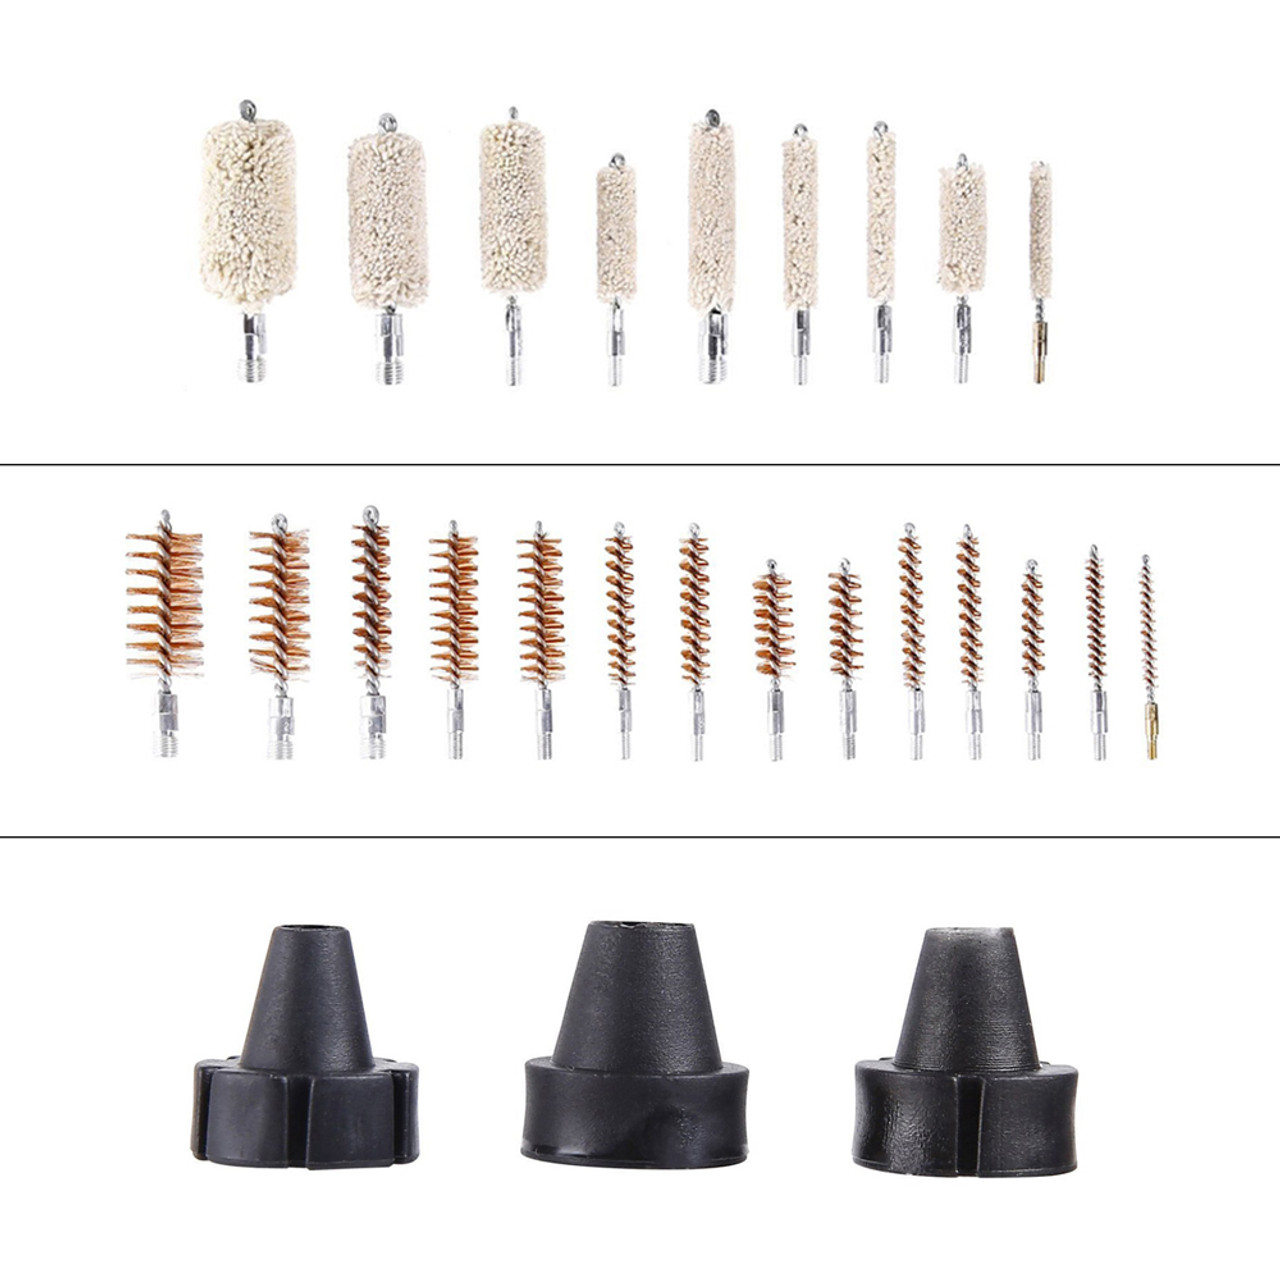 U.S. Solid Gun Cleaning Kit- Universal Gun Cleaner Tools for Rifle Pistol Shotgun 9mm, 163pcs